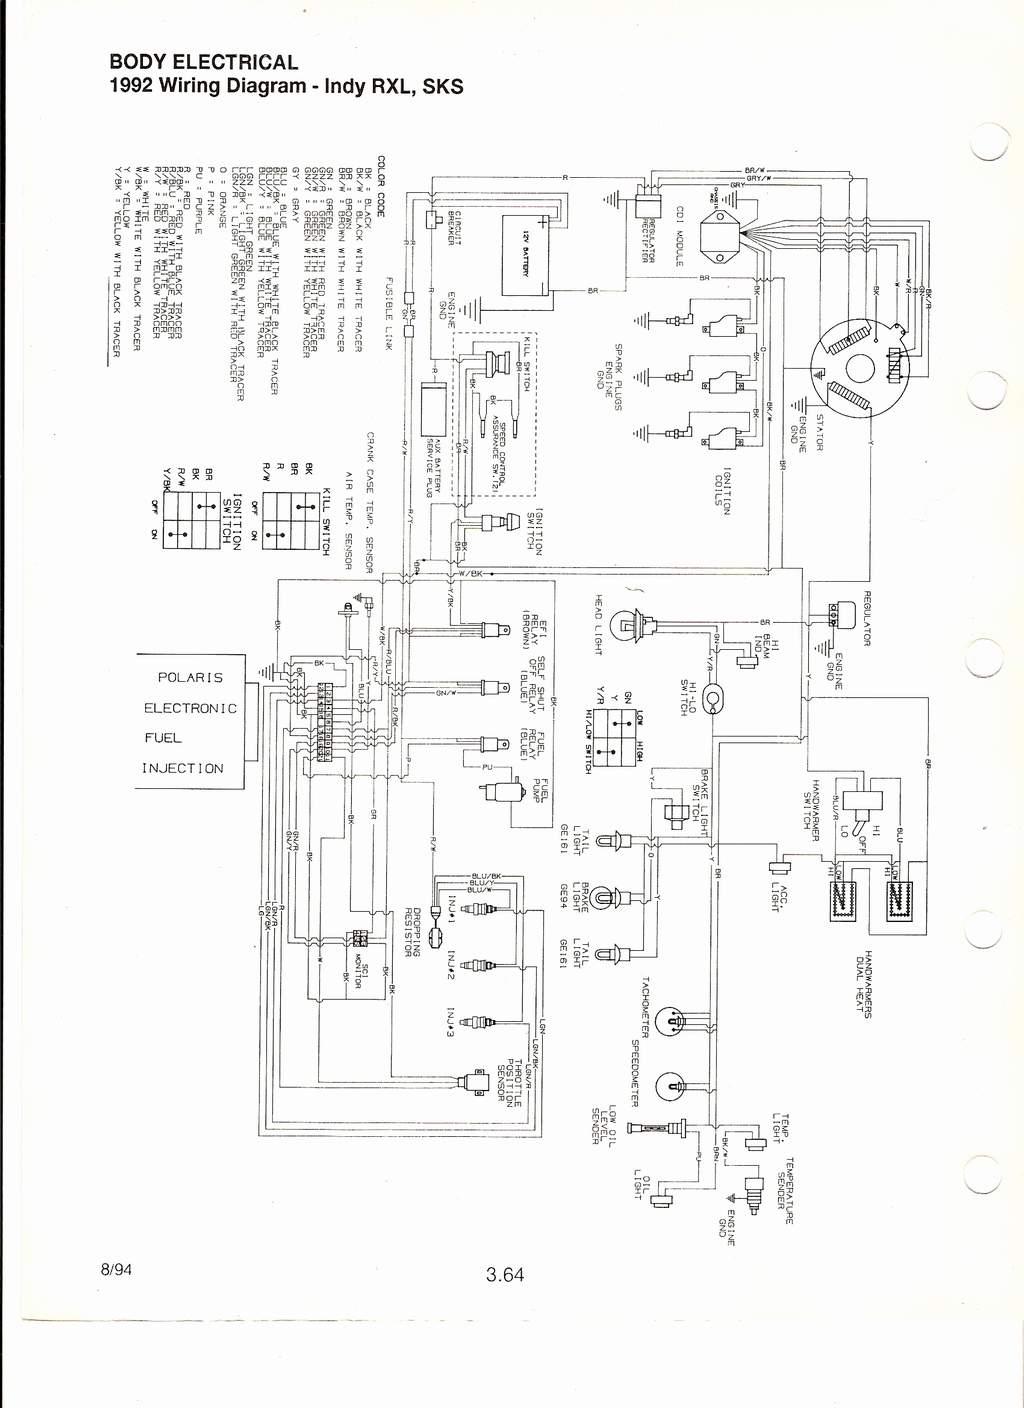 [WRG-7170] Polaris 650 Wiring Diagram